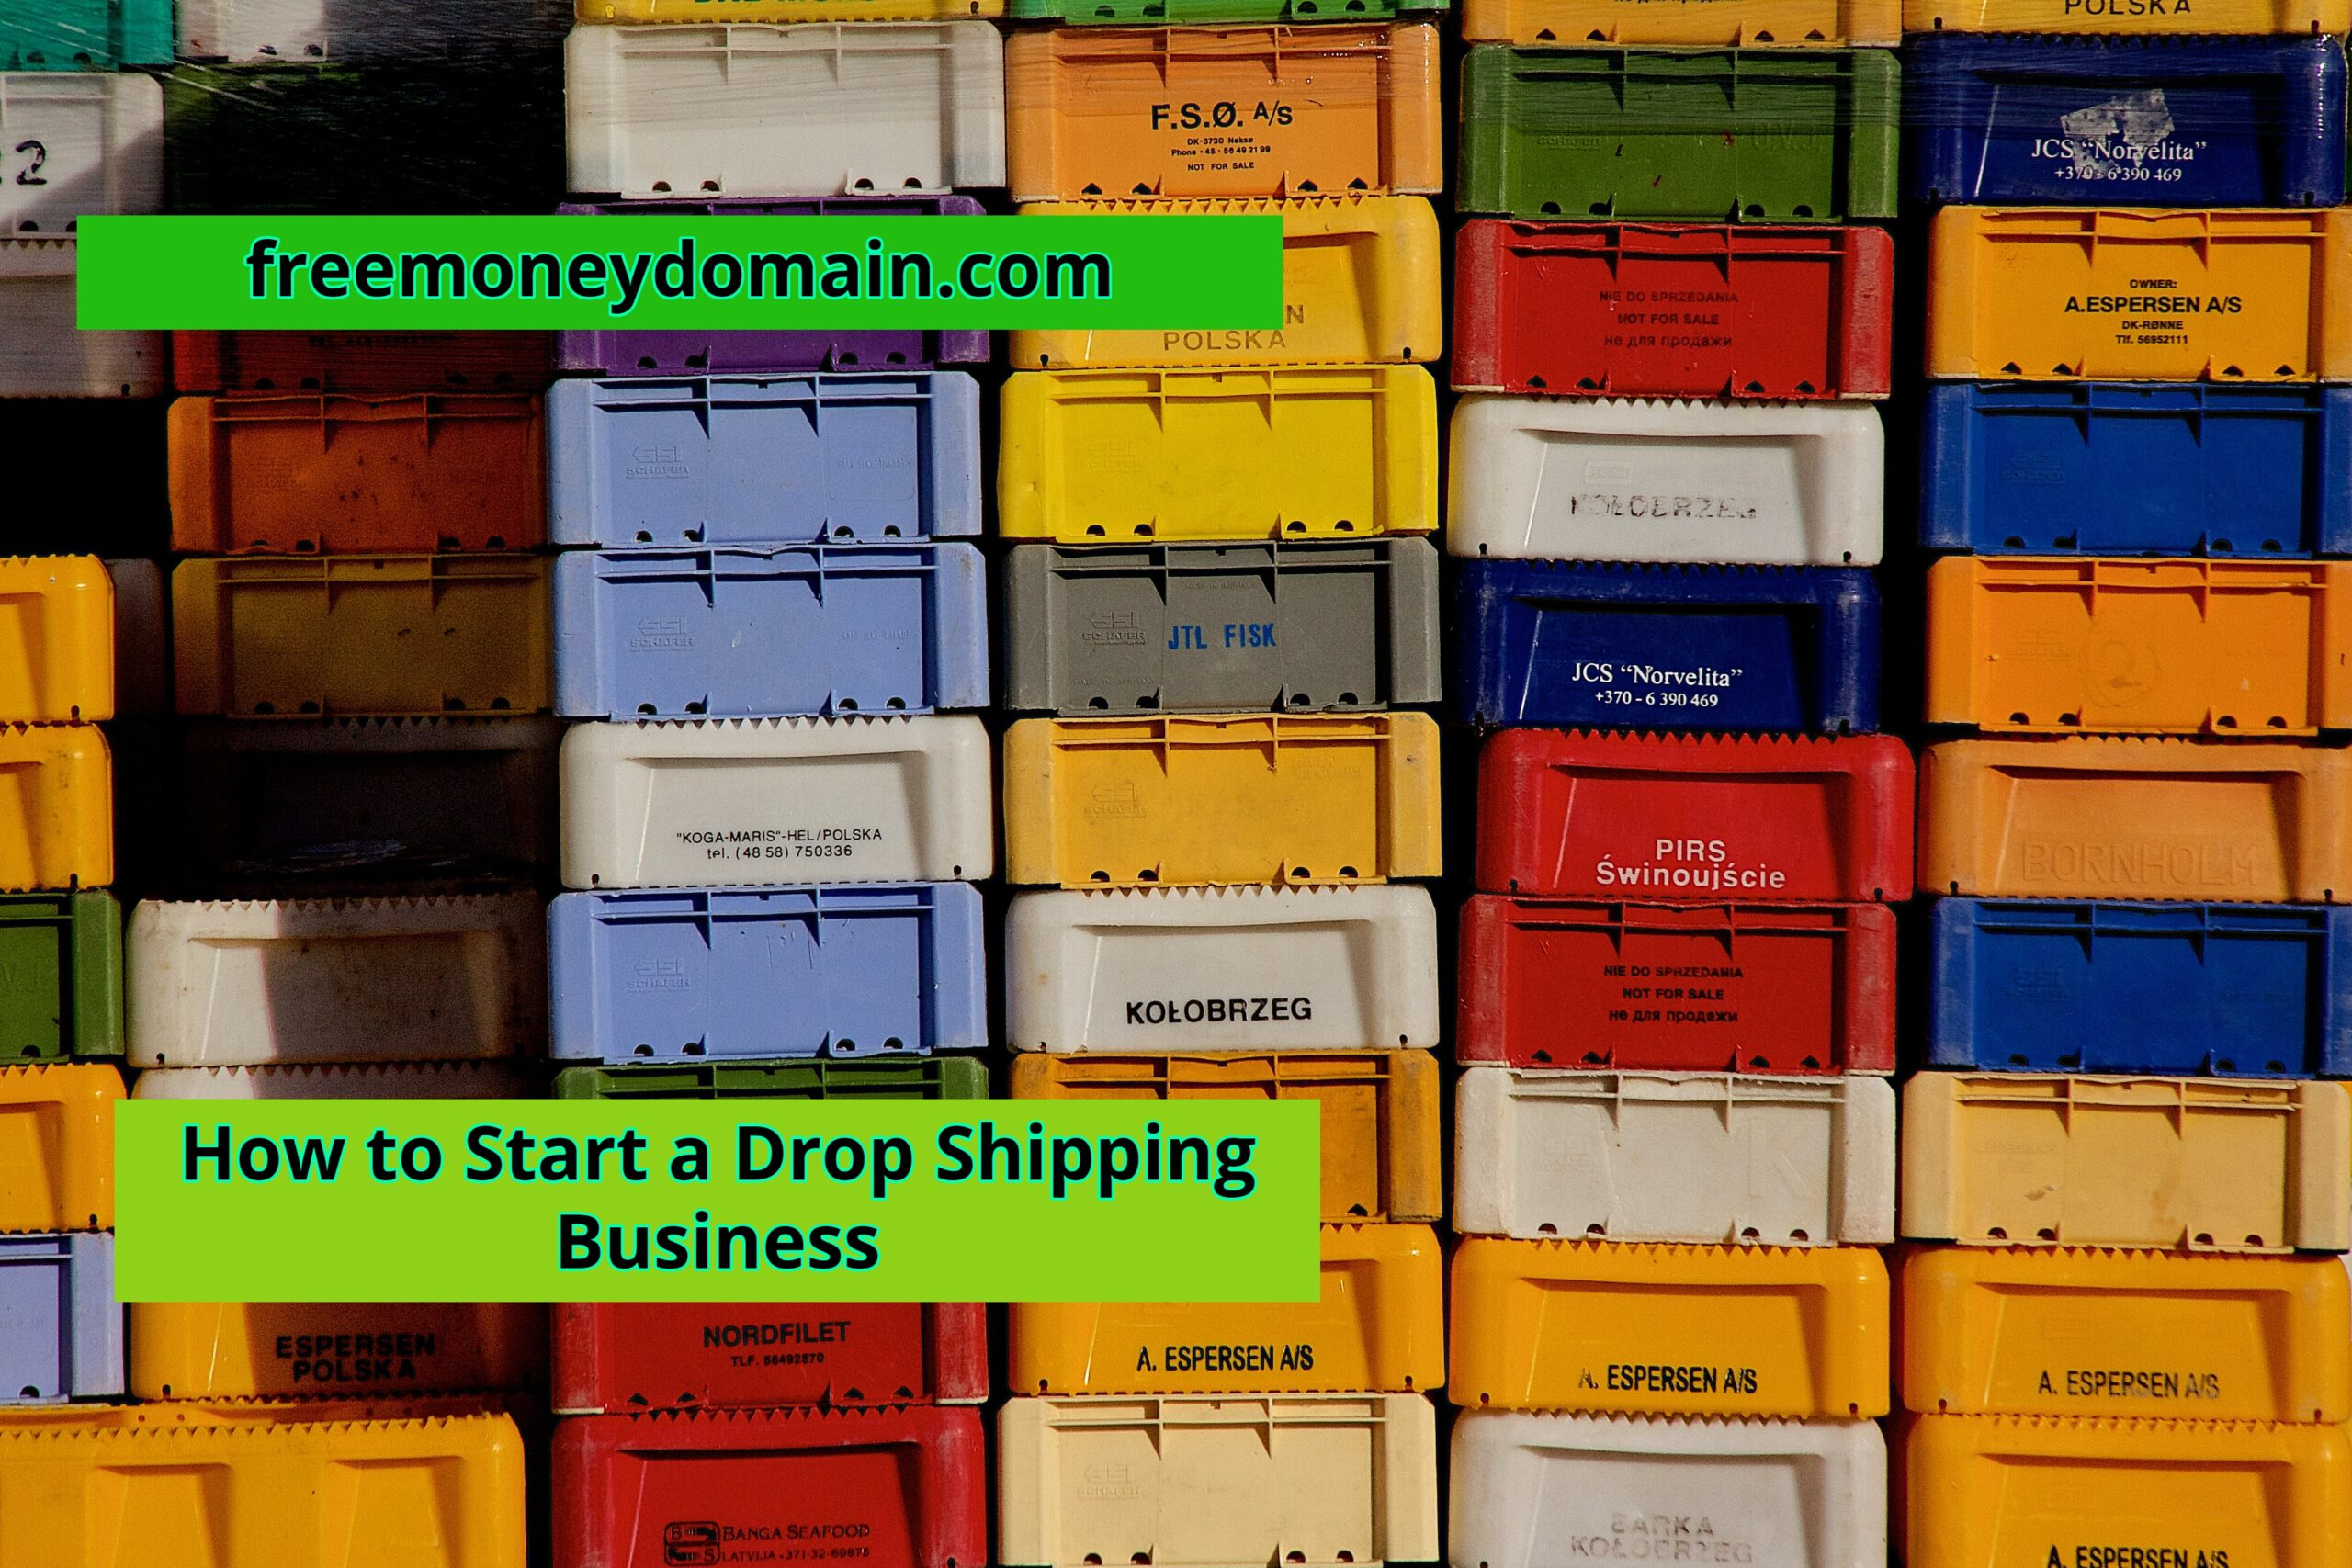 How to Start a Drop Shipping Business in 2021